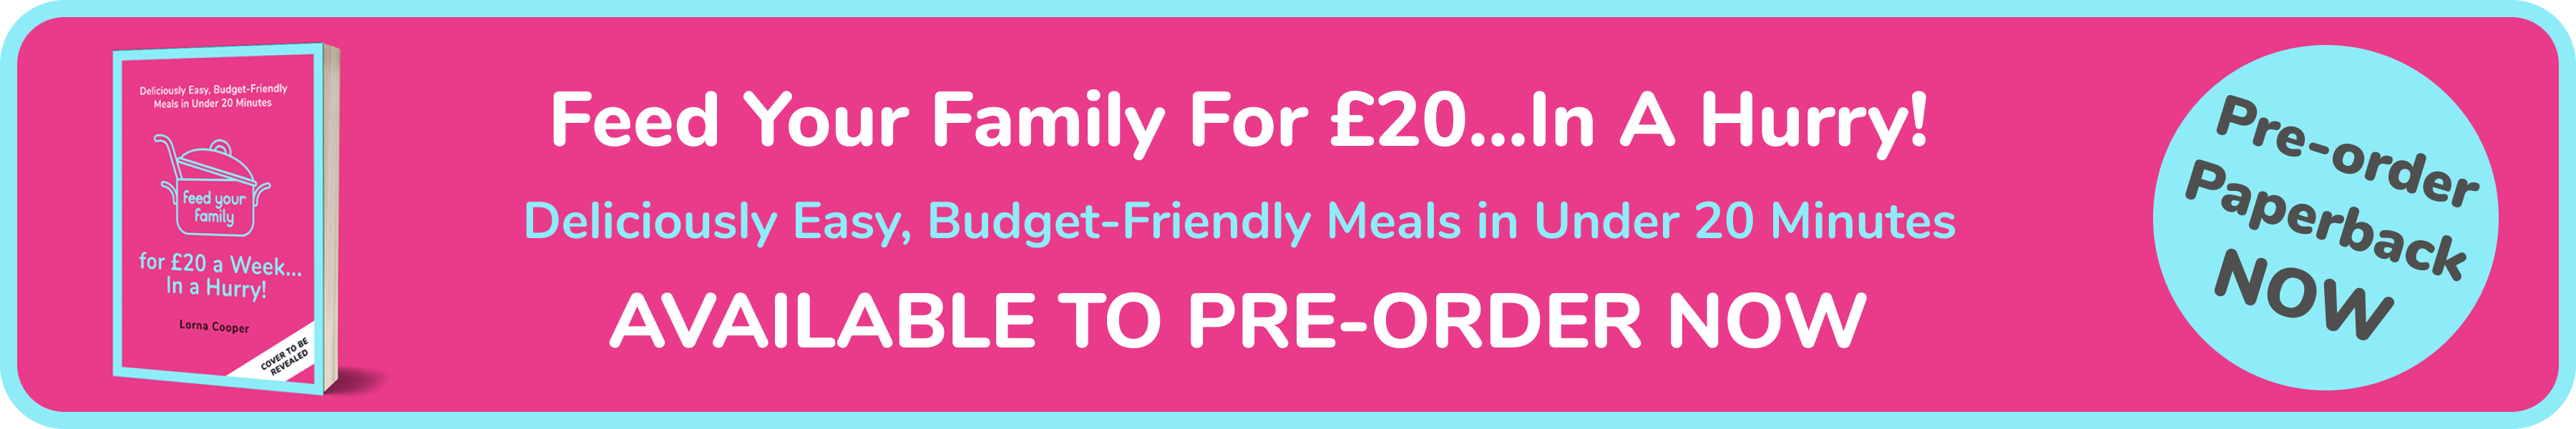 Feed Your Family For £20...In A Hurry! The Cookbook